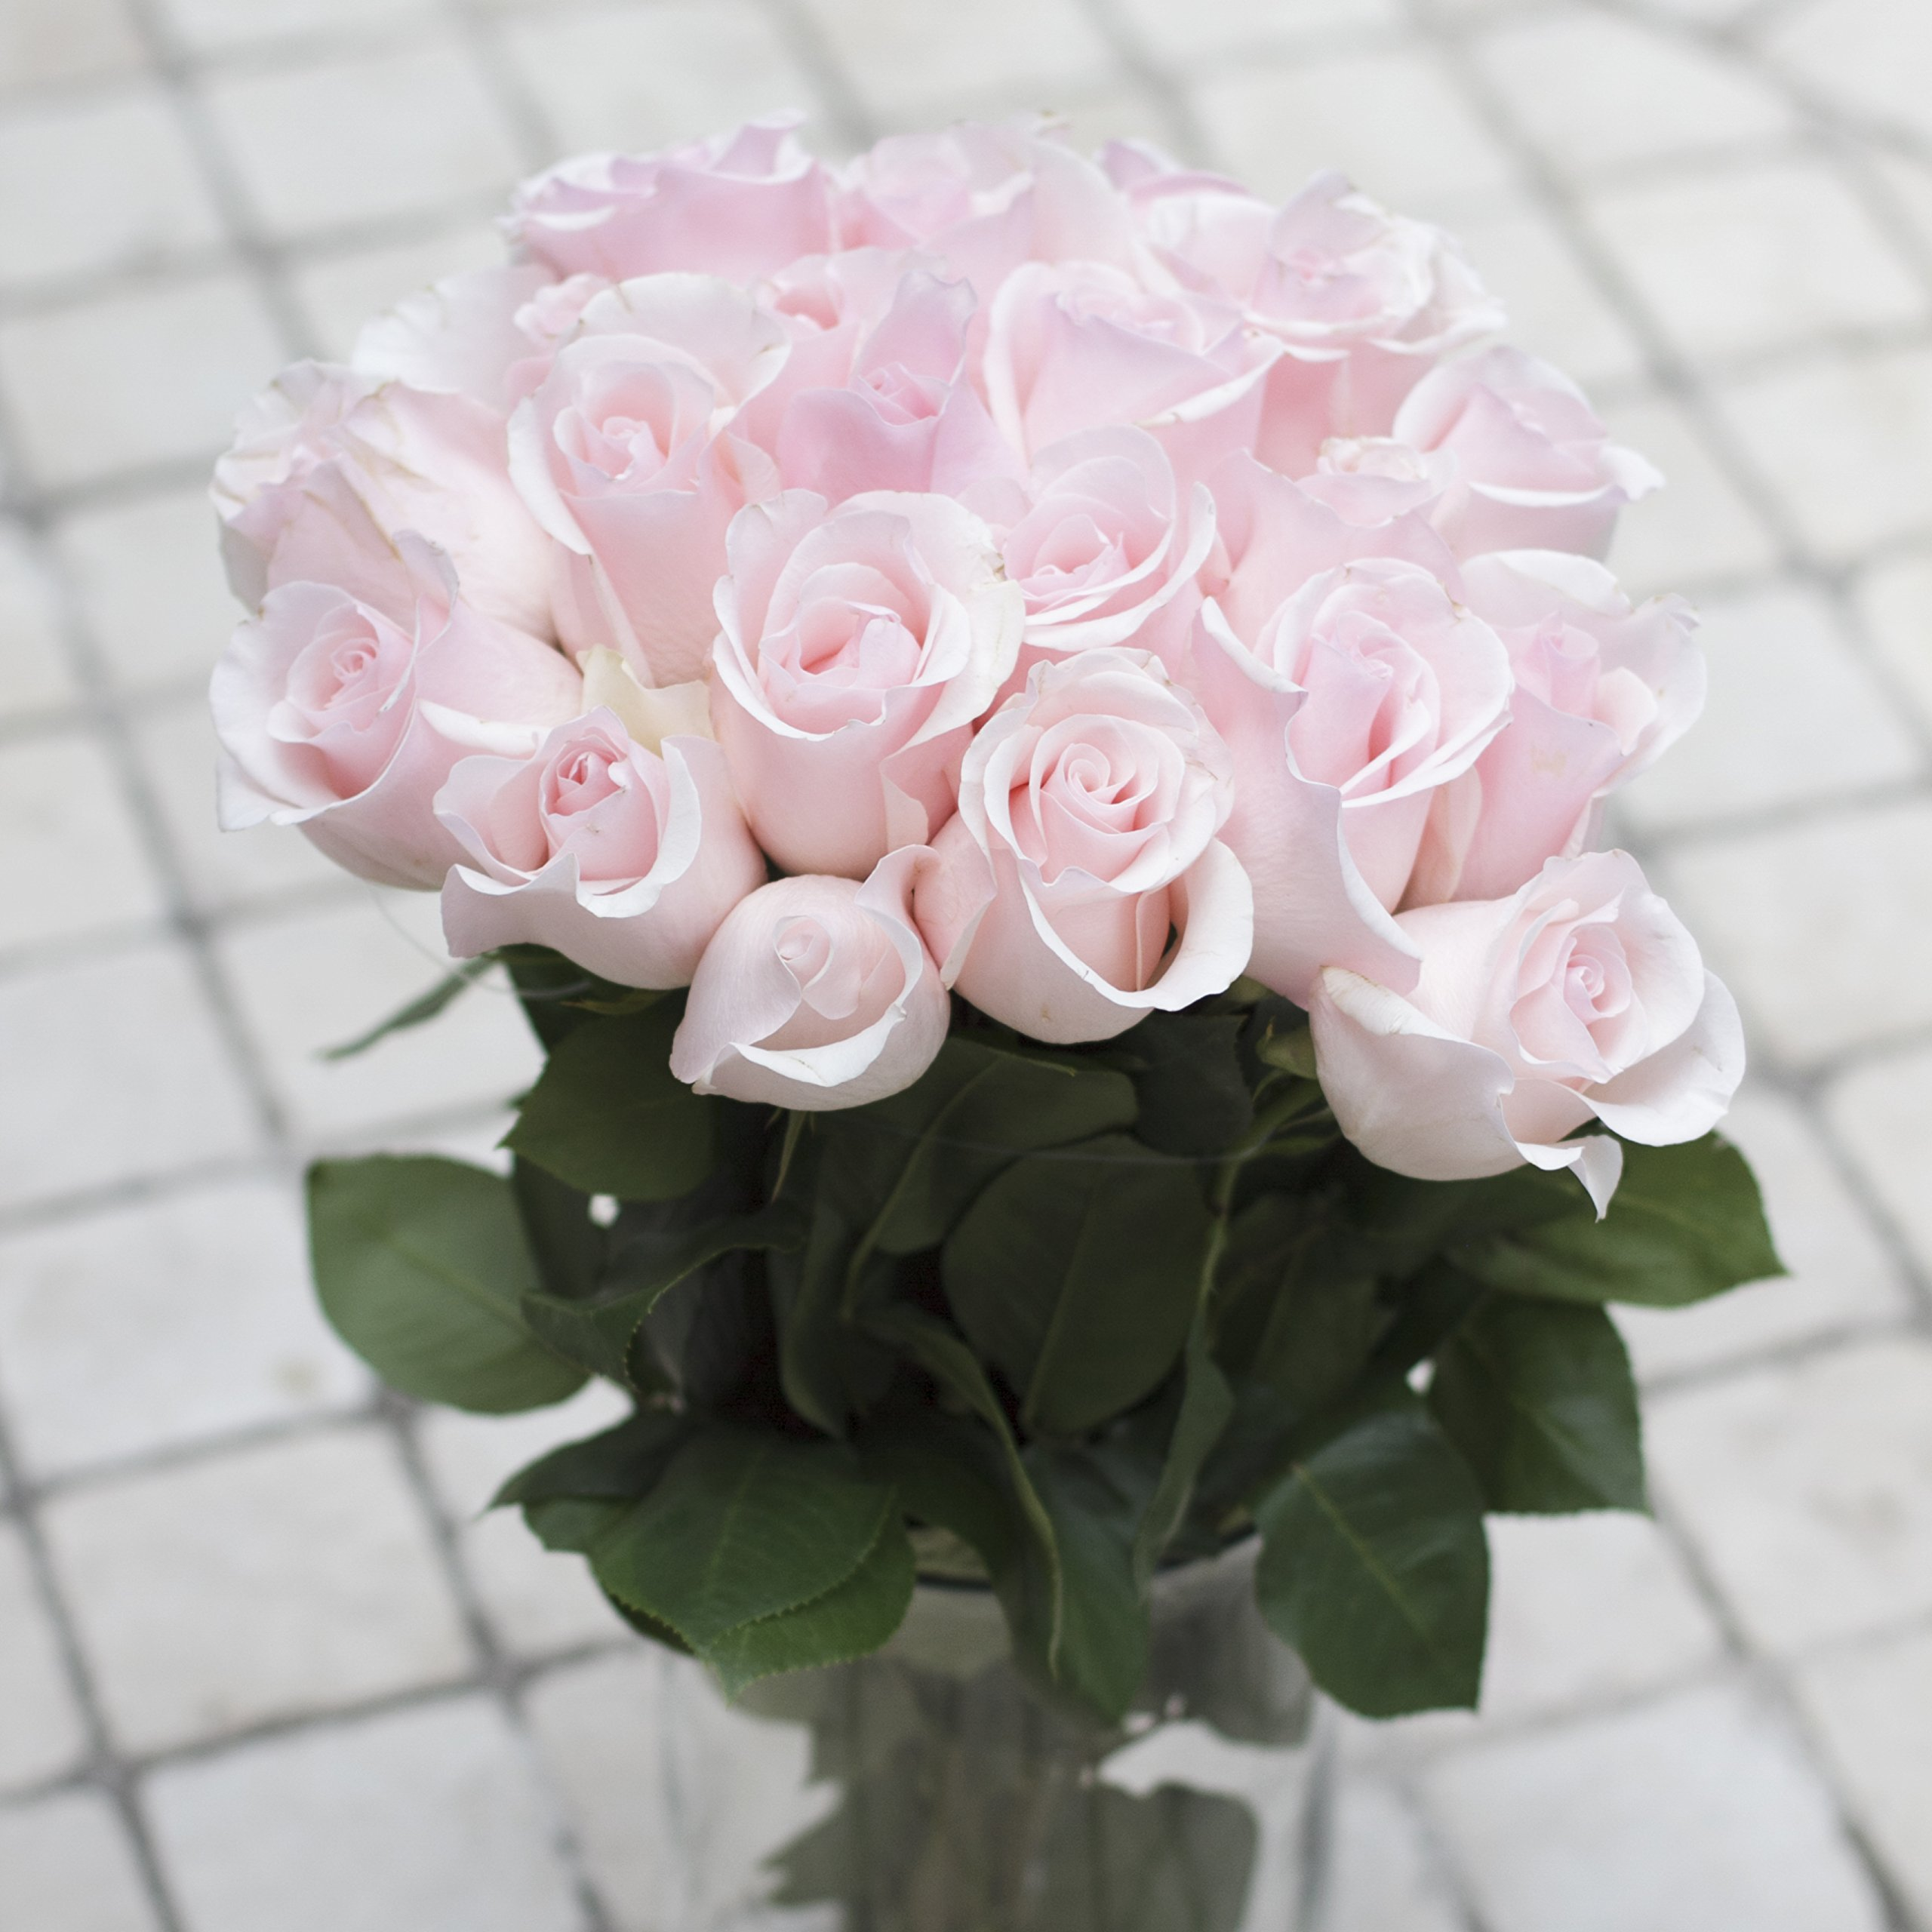 Green Choice Flowers - 24 ( 2 Dozen ) Premium Pink Fresh Roses with 20 inch Long Stem Farm Fresh Flowers Beautiful Light Pink Rose Flower Cut Per Order Direct from Farm Free Fast Delivery Long Lasting by Greenchoiceflowers (Image #3)